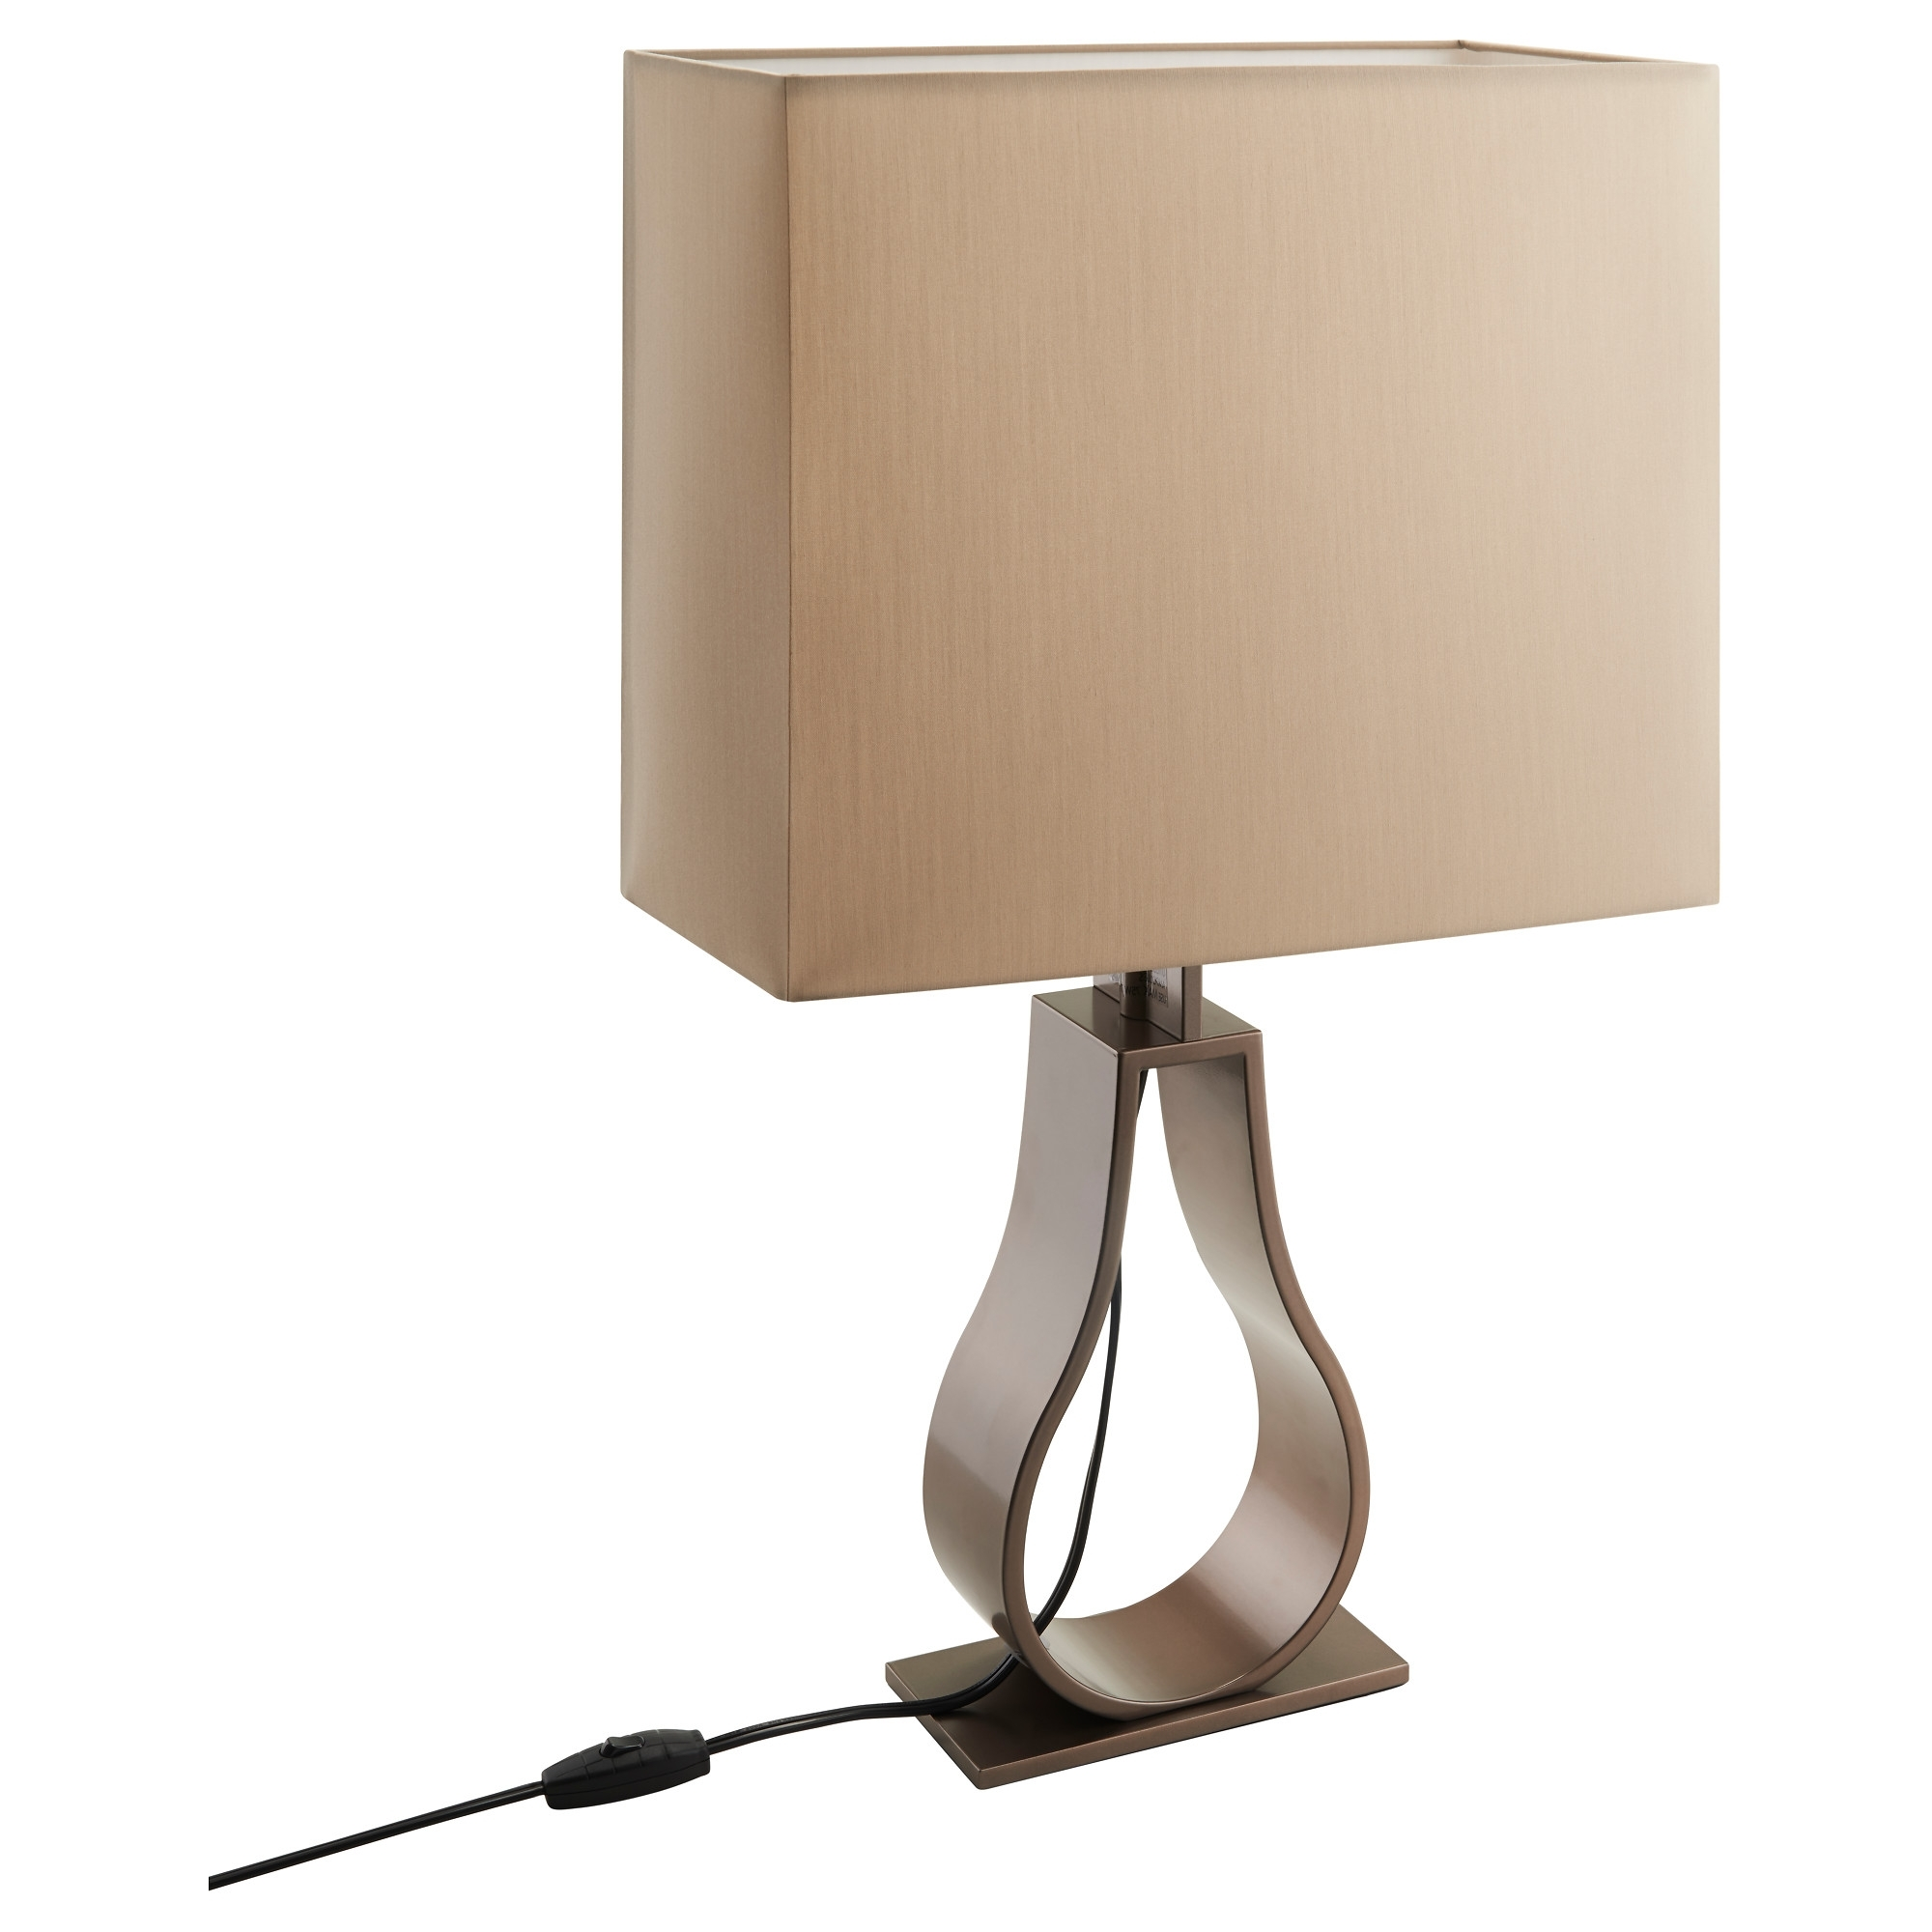 Top 70 Wonderful White Lamp Floor Lamps Table For Living Room Buffet Within Well Known Table Lamps For Living Room Uk (View 15 of 20)